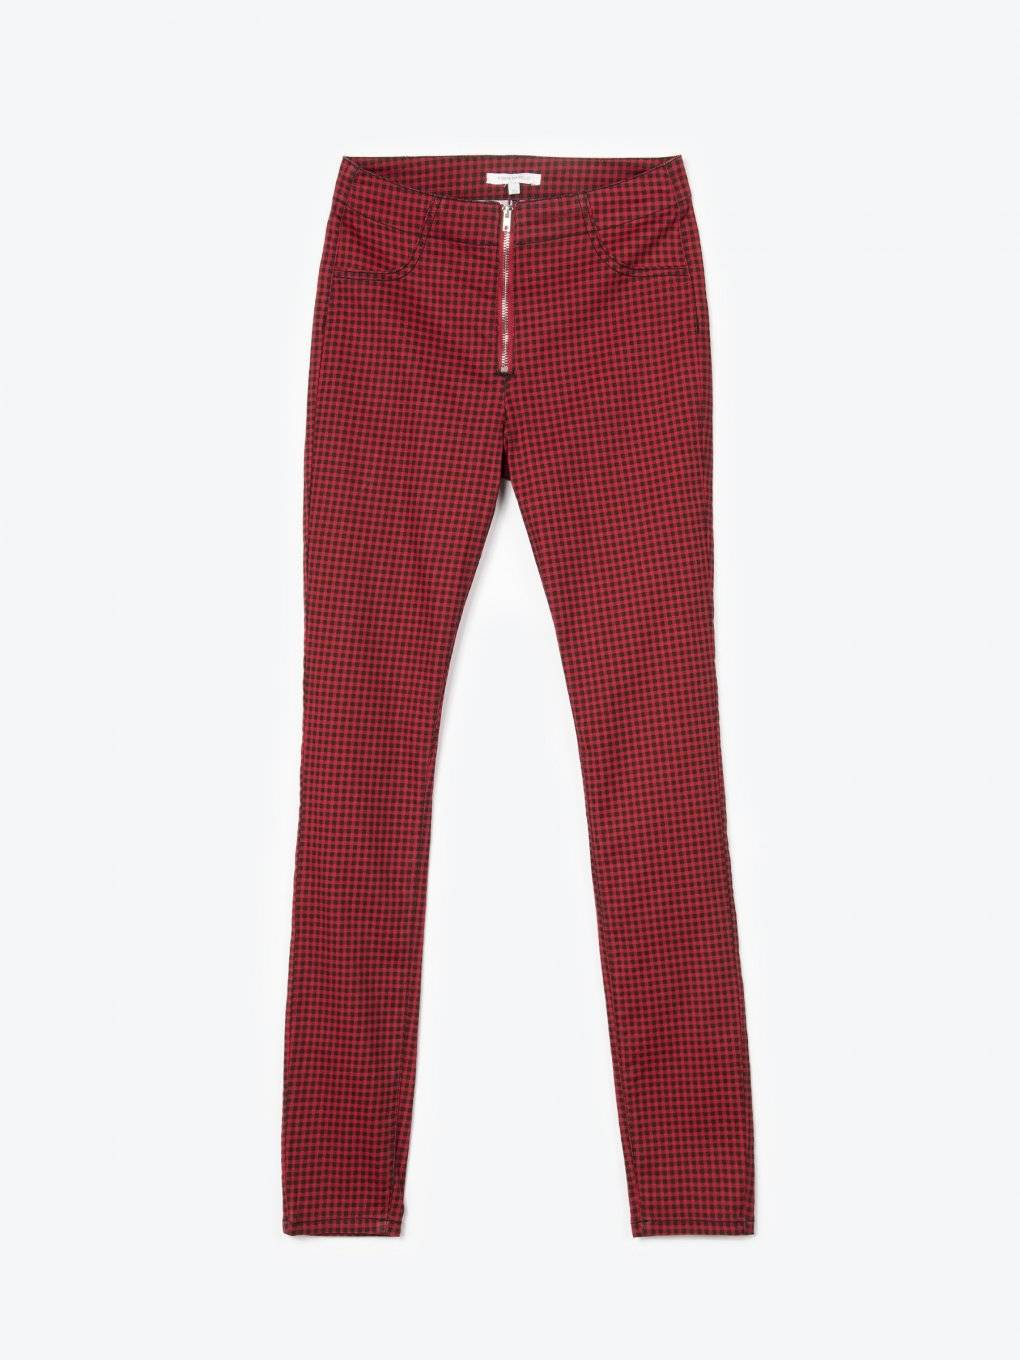 Gingham skinny trousers with zipper